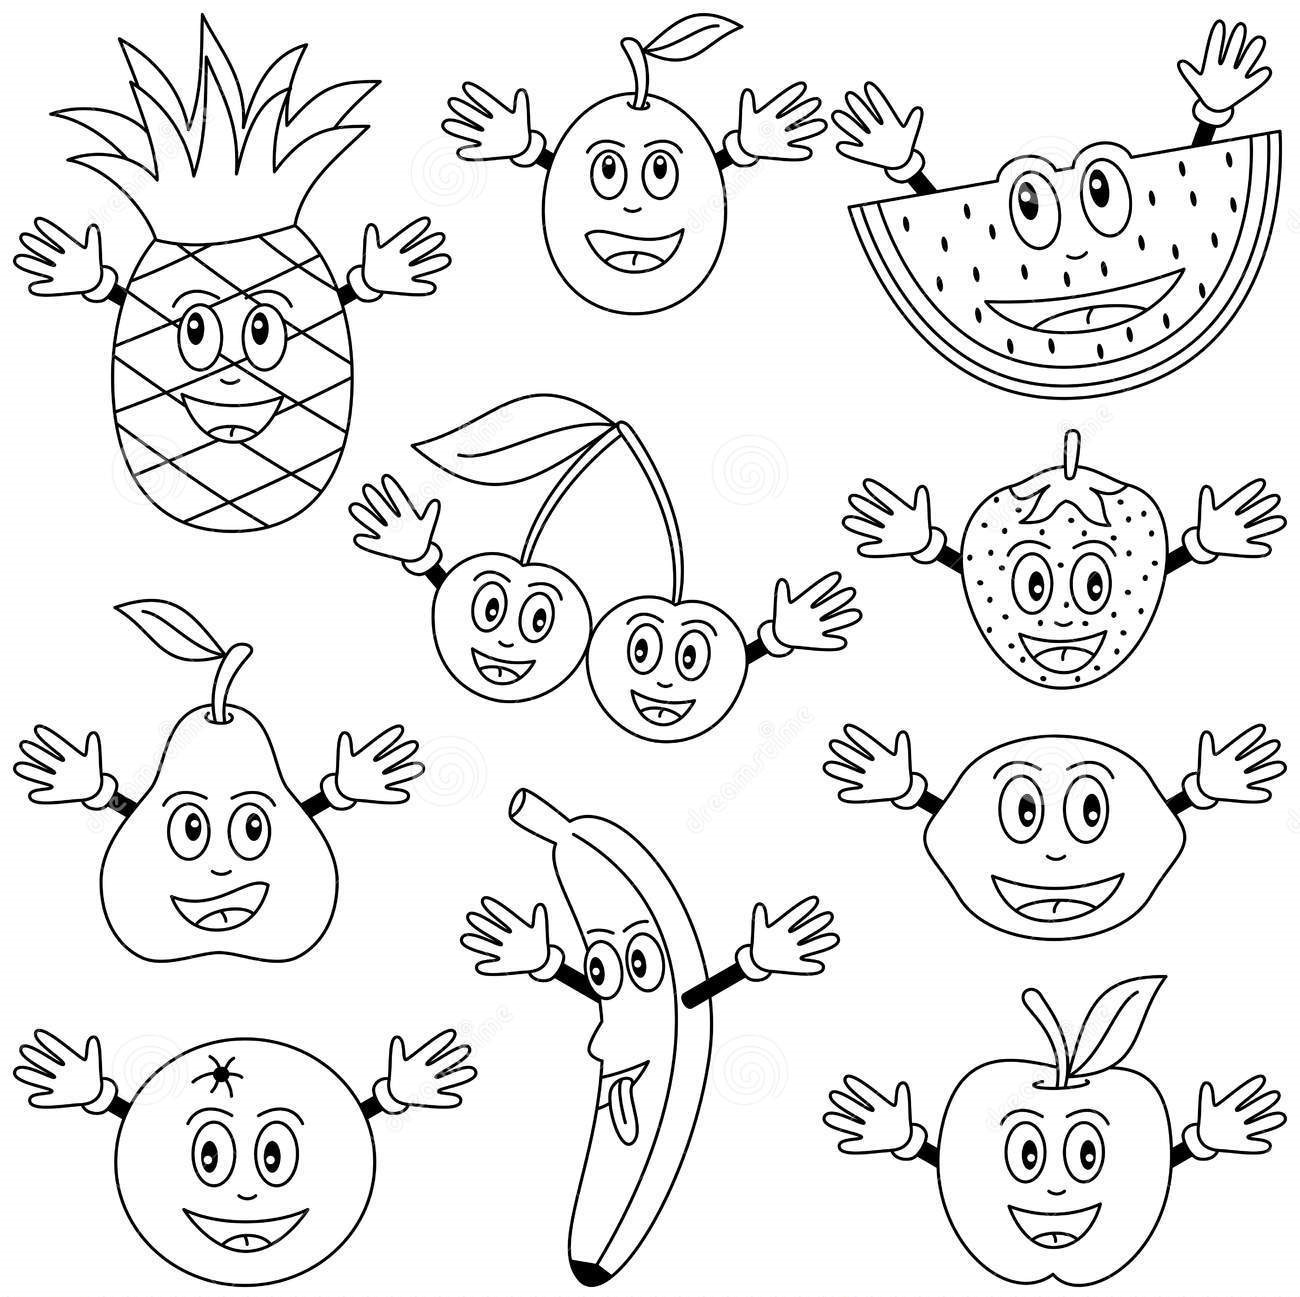 coloring vegetables and fruits fruits vegetables crafts and worksheets for preschool coloring fruits vegetables and